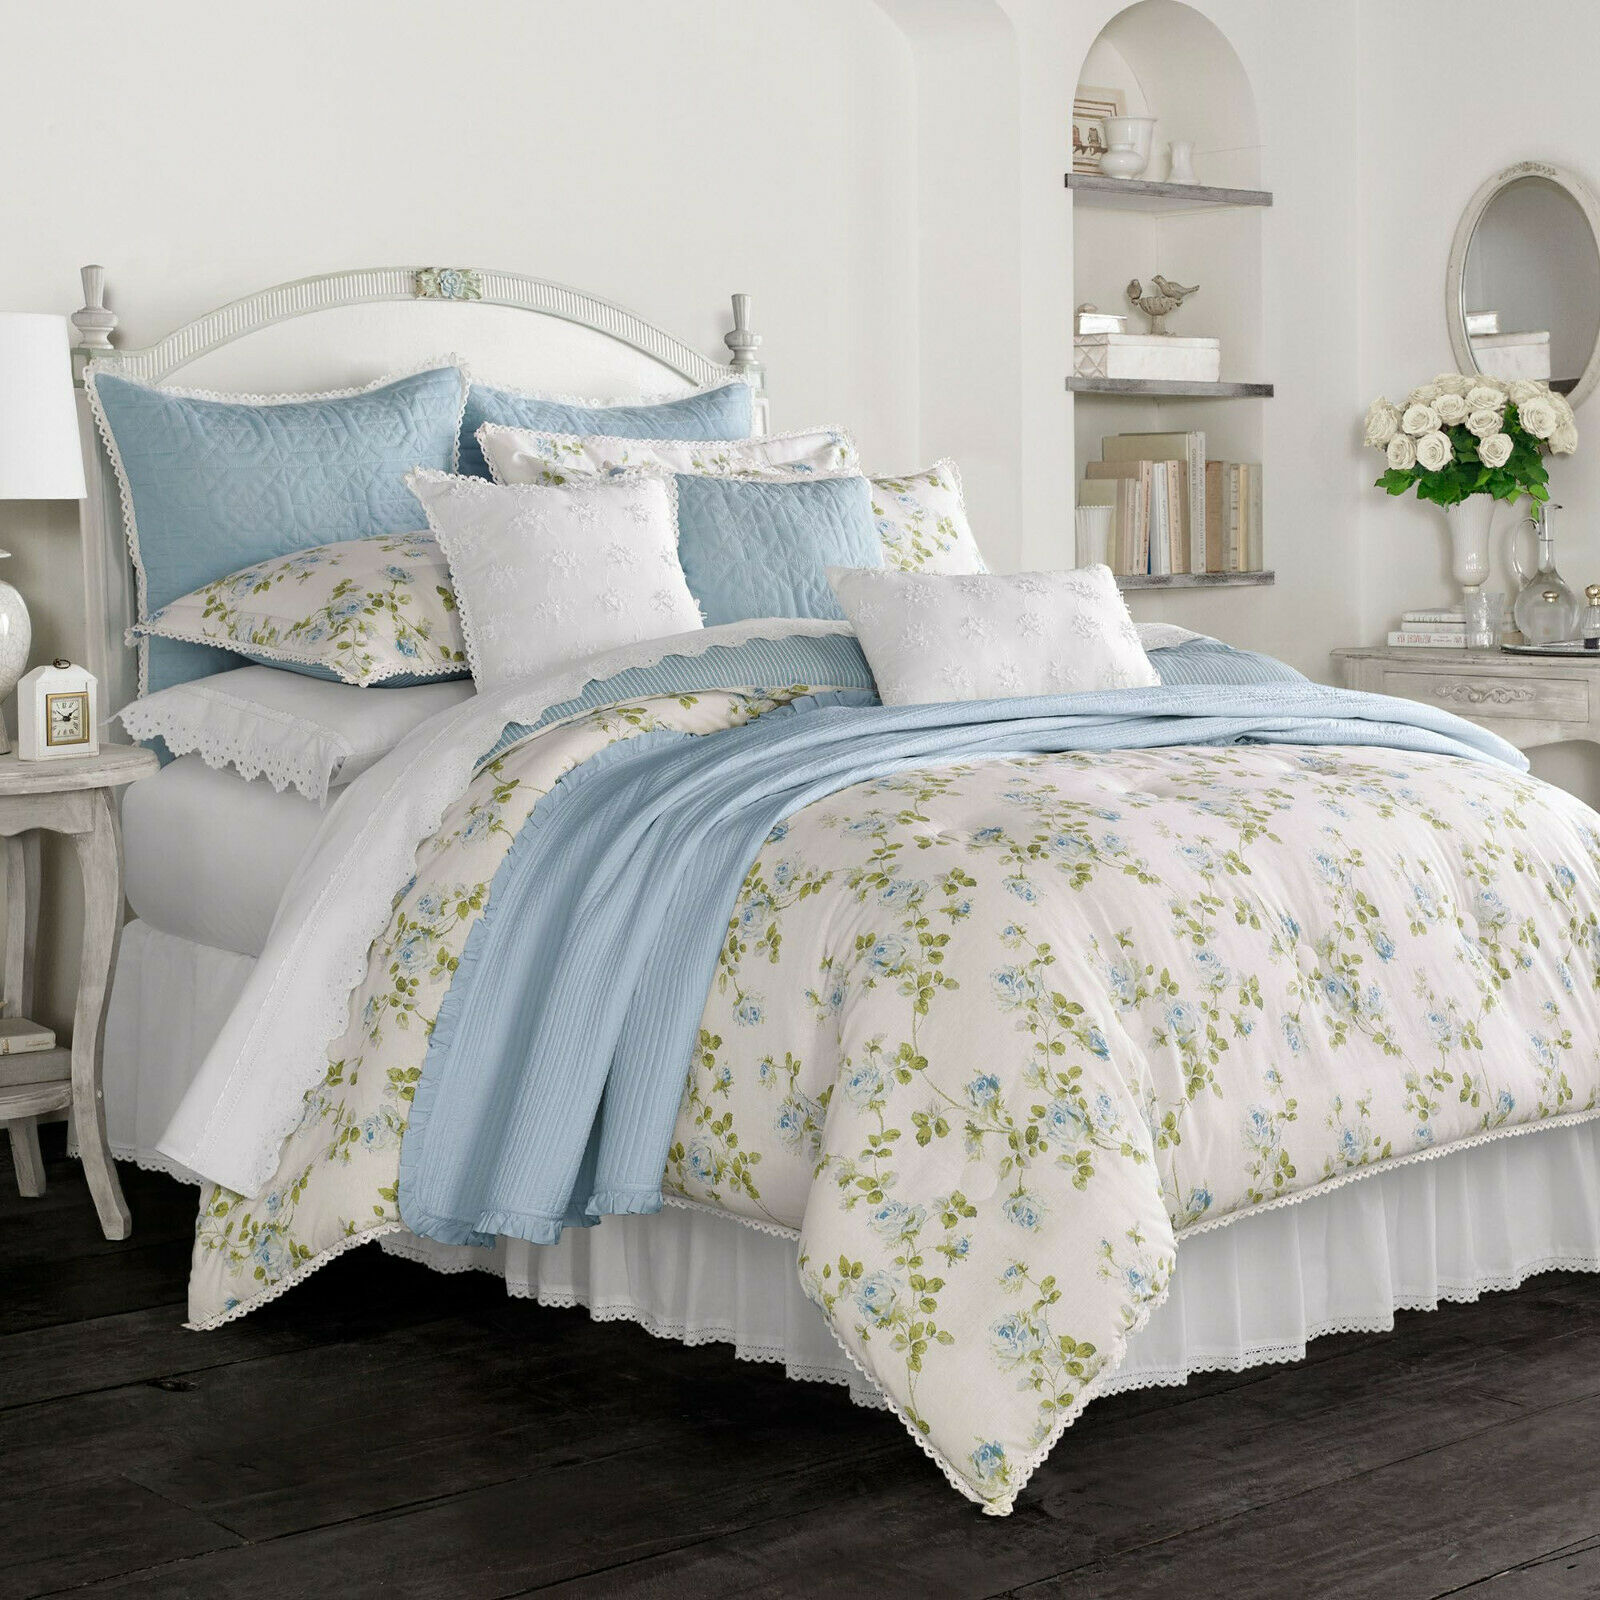 PIPER AND WRIGHT  535 NEW King Comforter Set 4PC pinkLIE blueE FLORAL